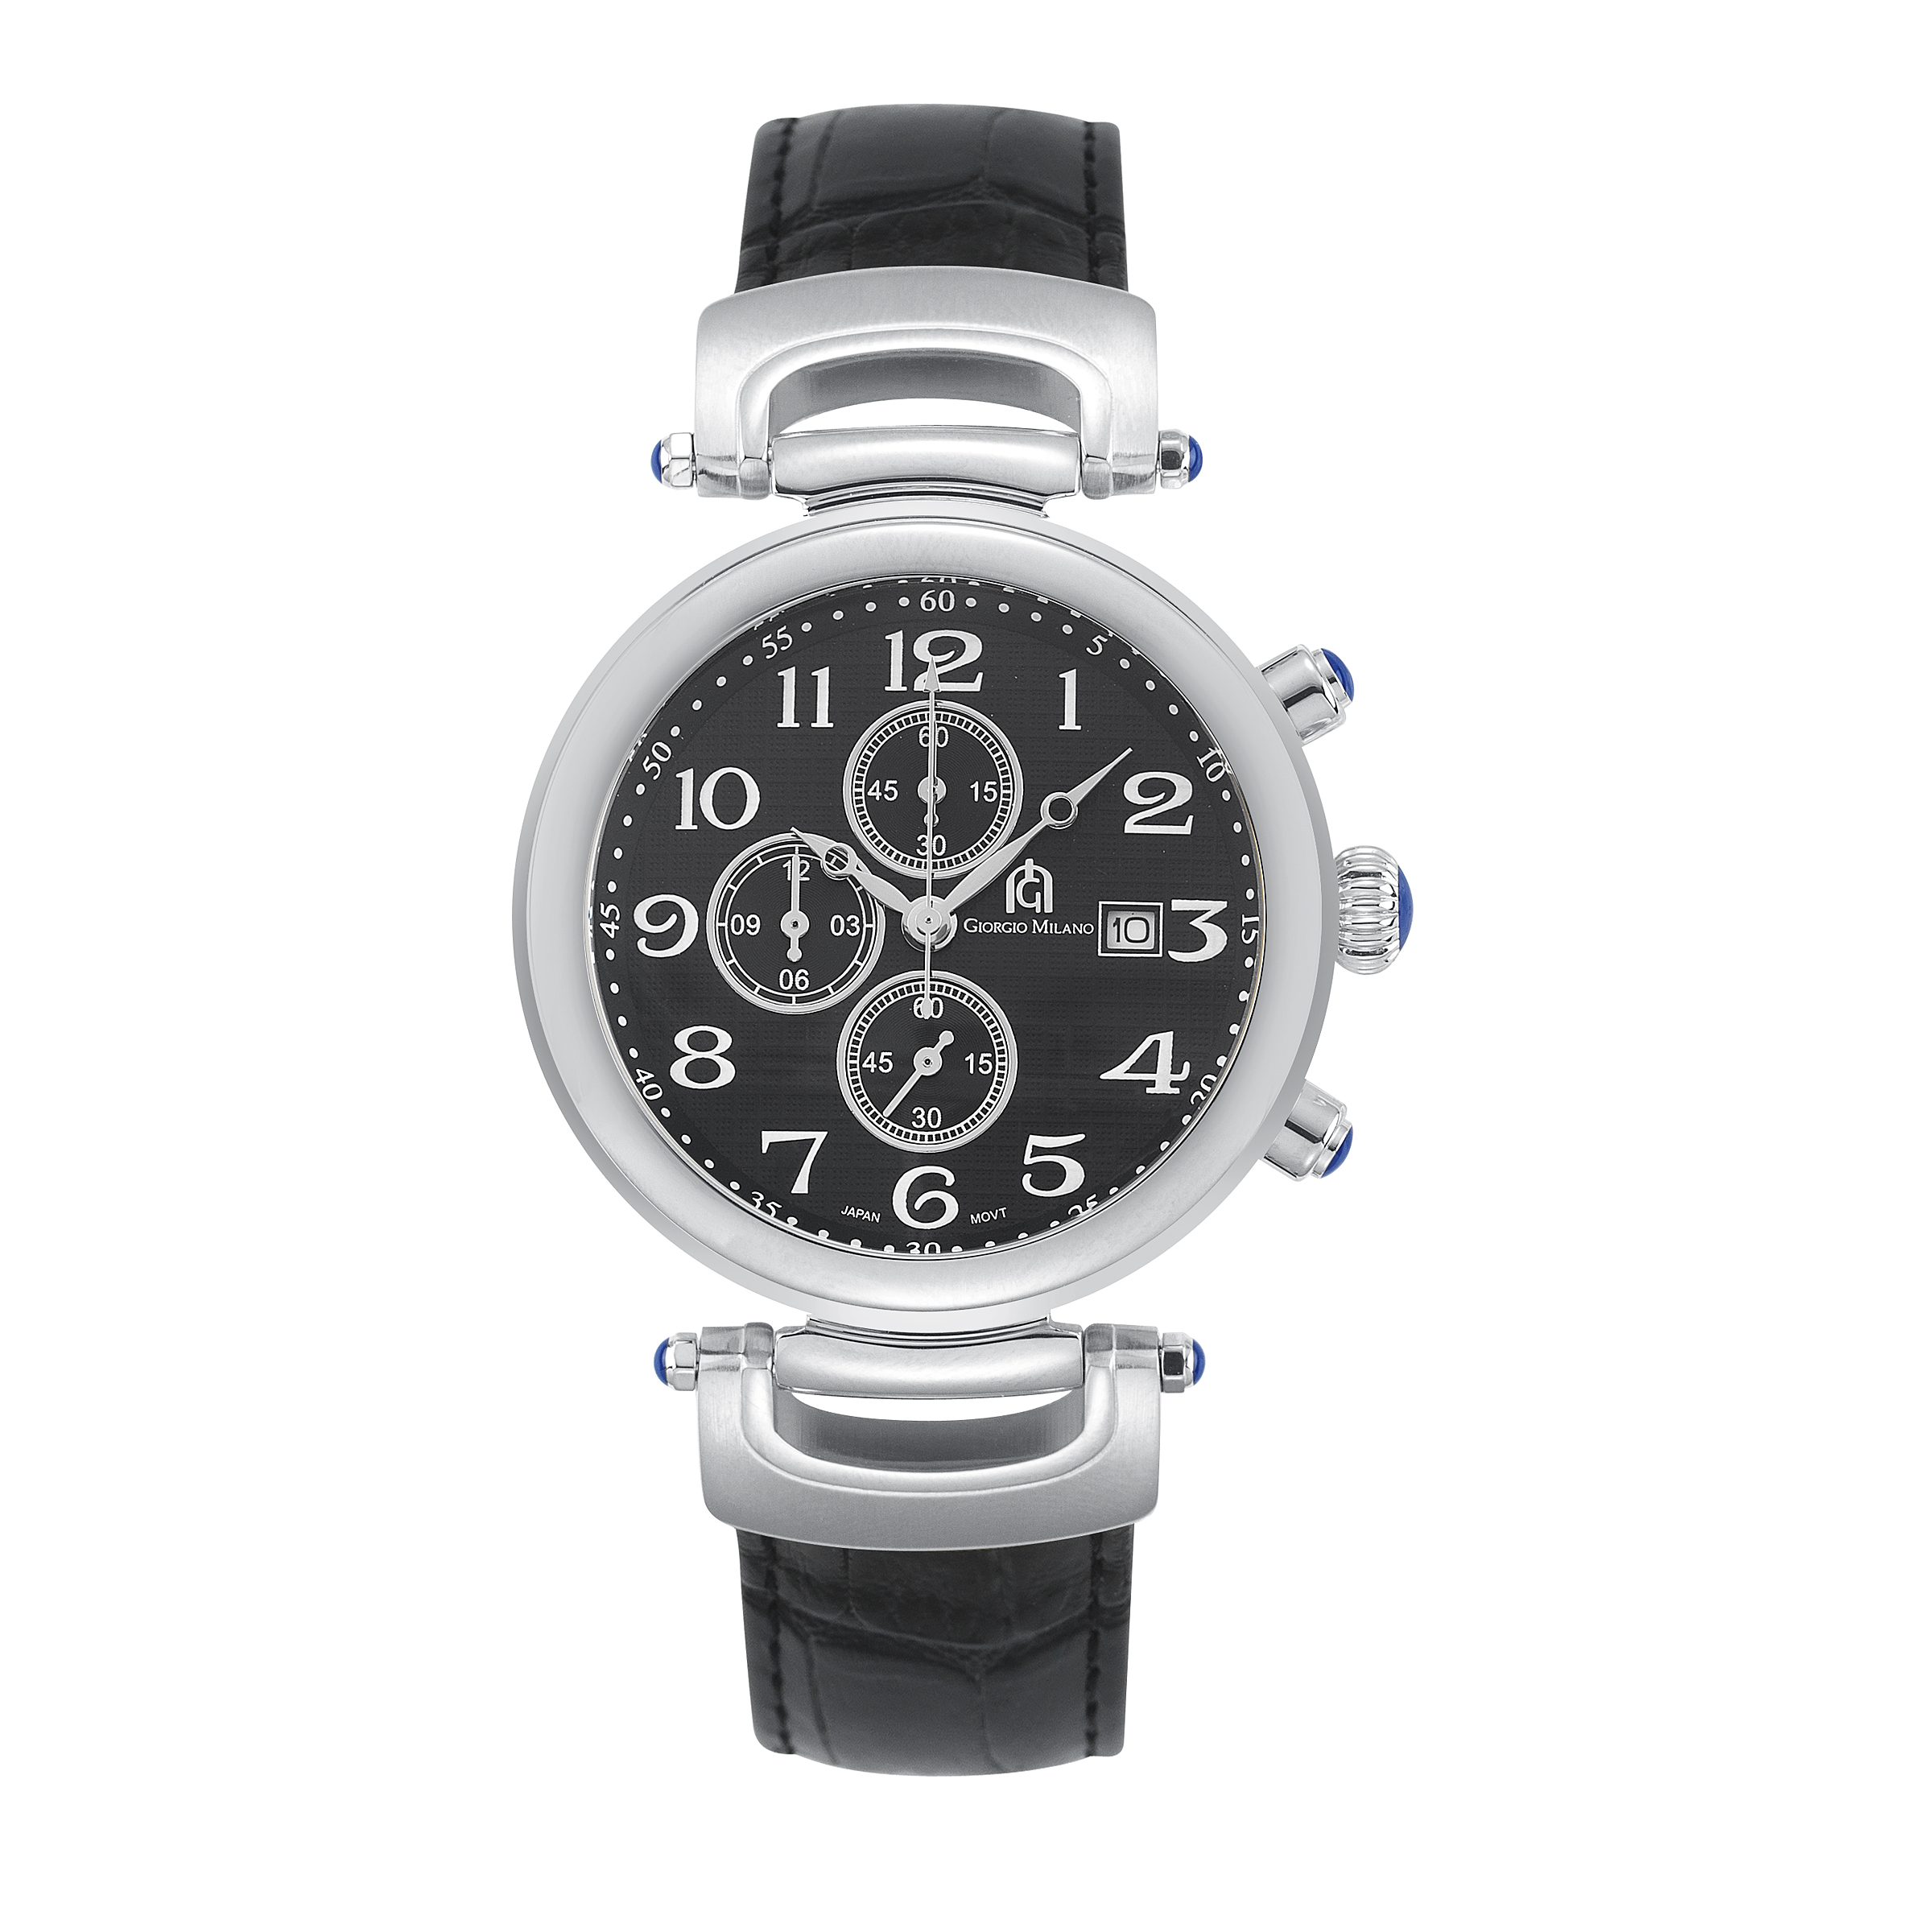 DANTE - Men's Giorgio Milano Stainless Steel Silver Watch with Genuine Leather Straps & Date